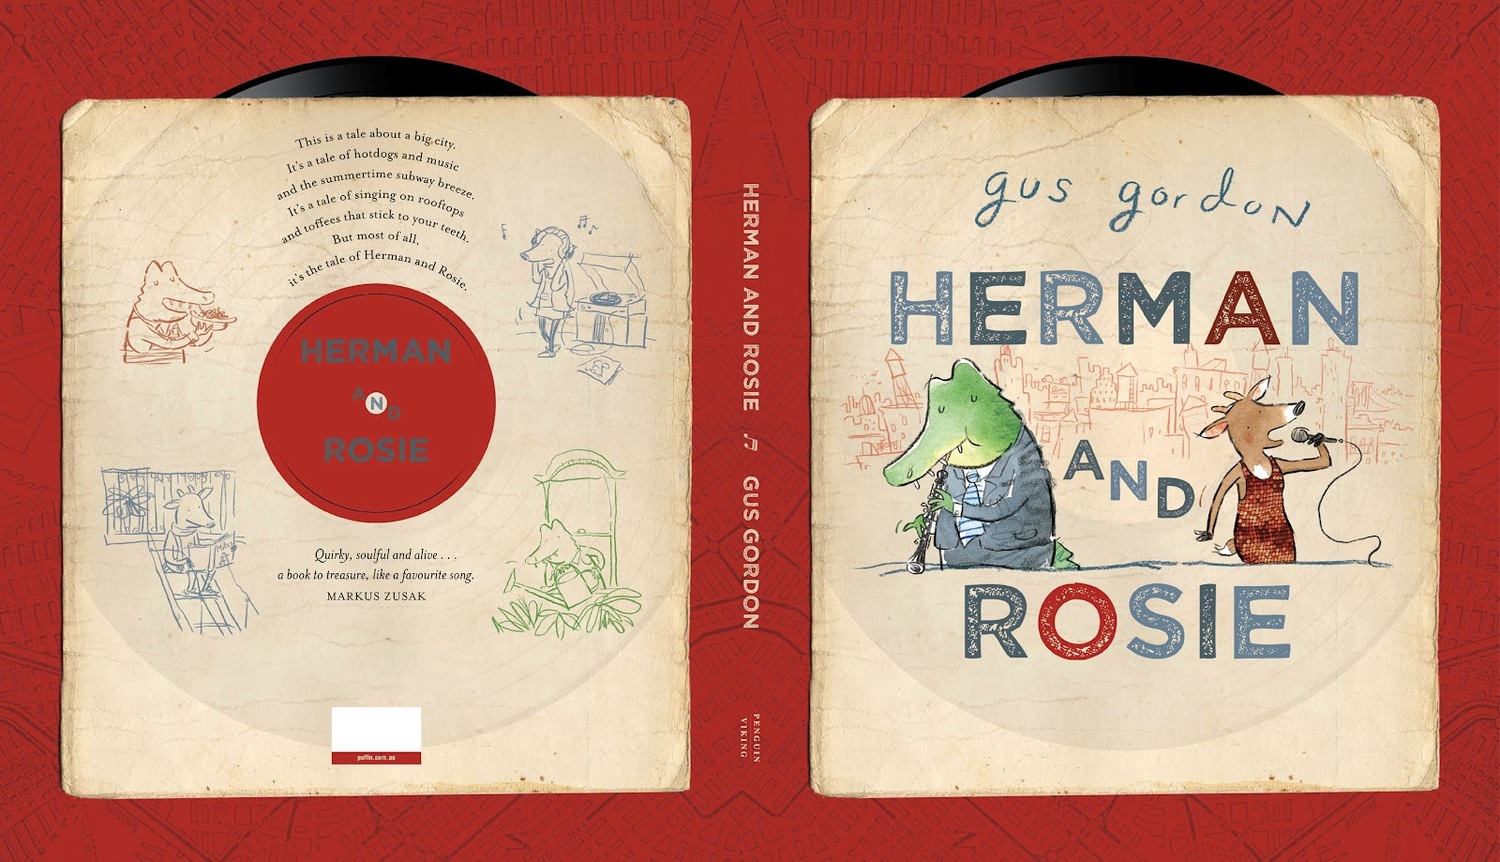 Herman+and+Rosie+cover.jpeg